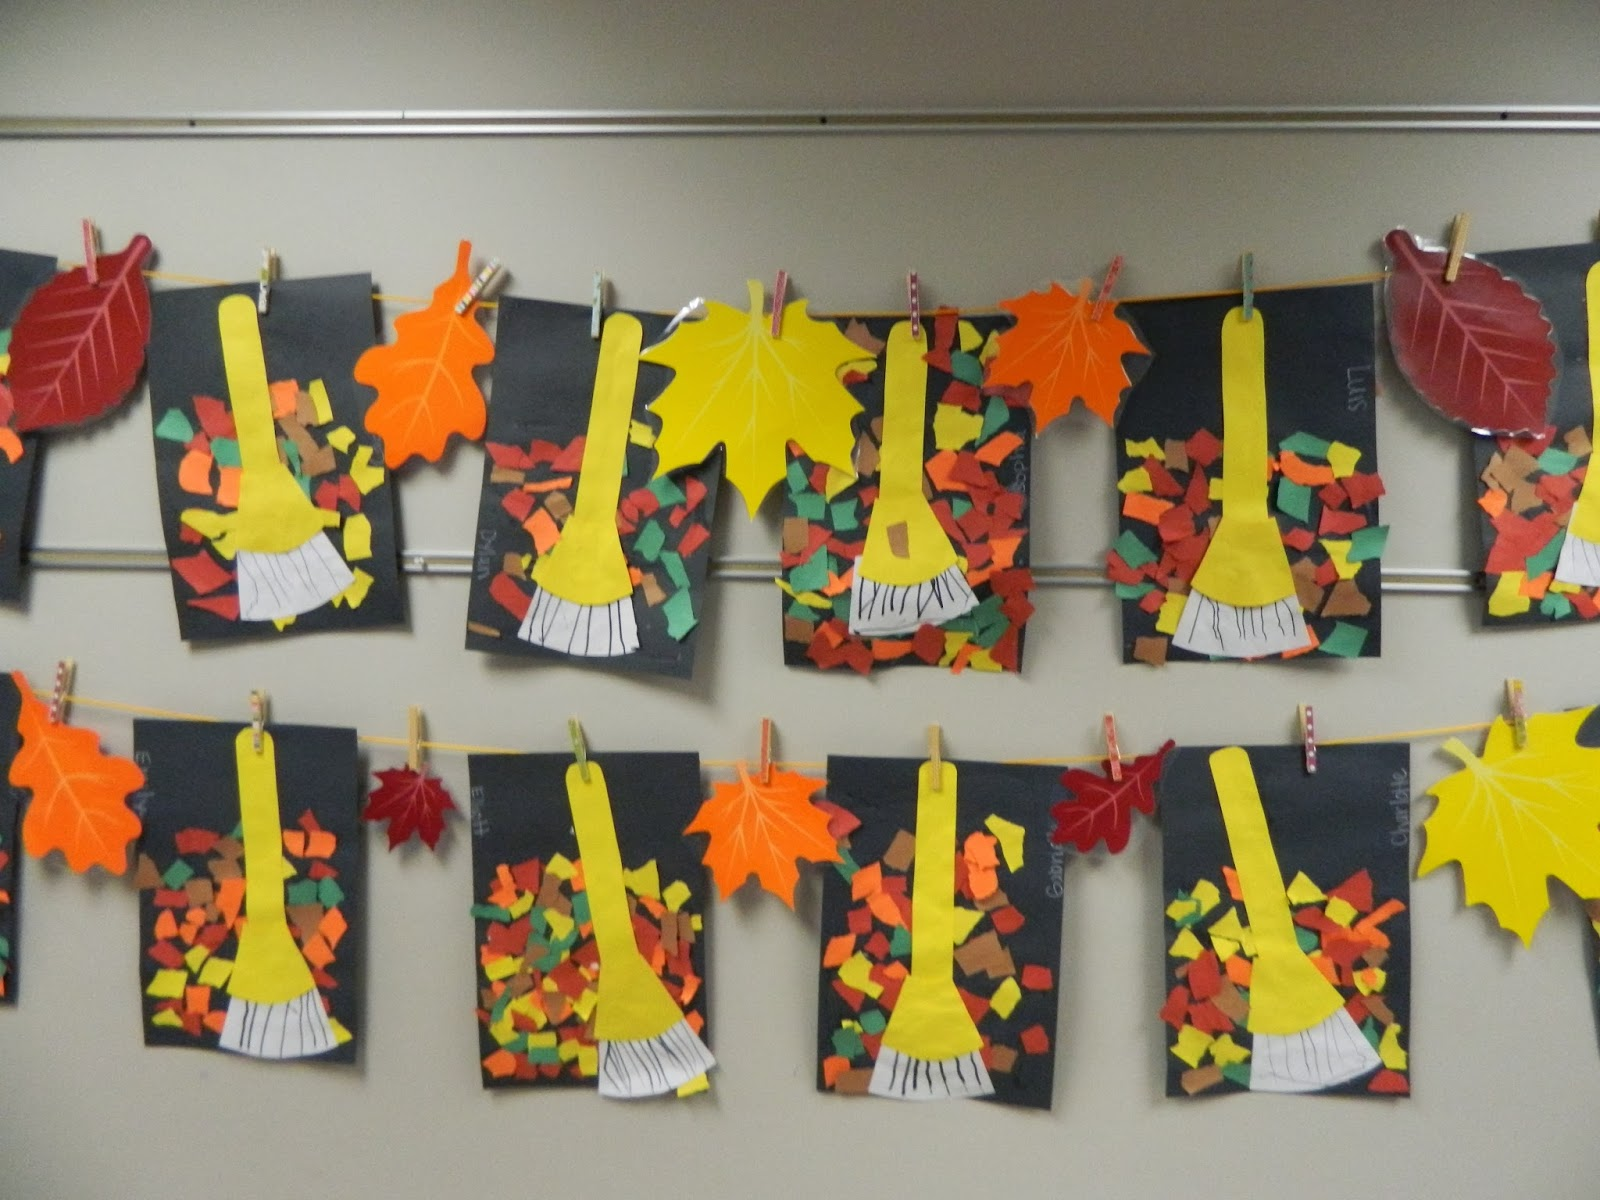 The vintage umbrella rakes and leaves art project for November arts and crafts for daycare